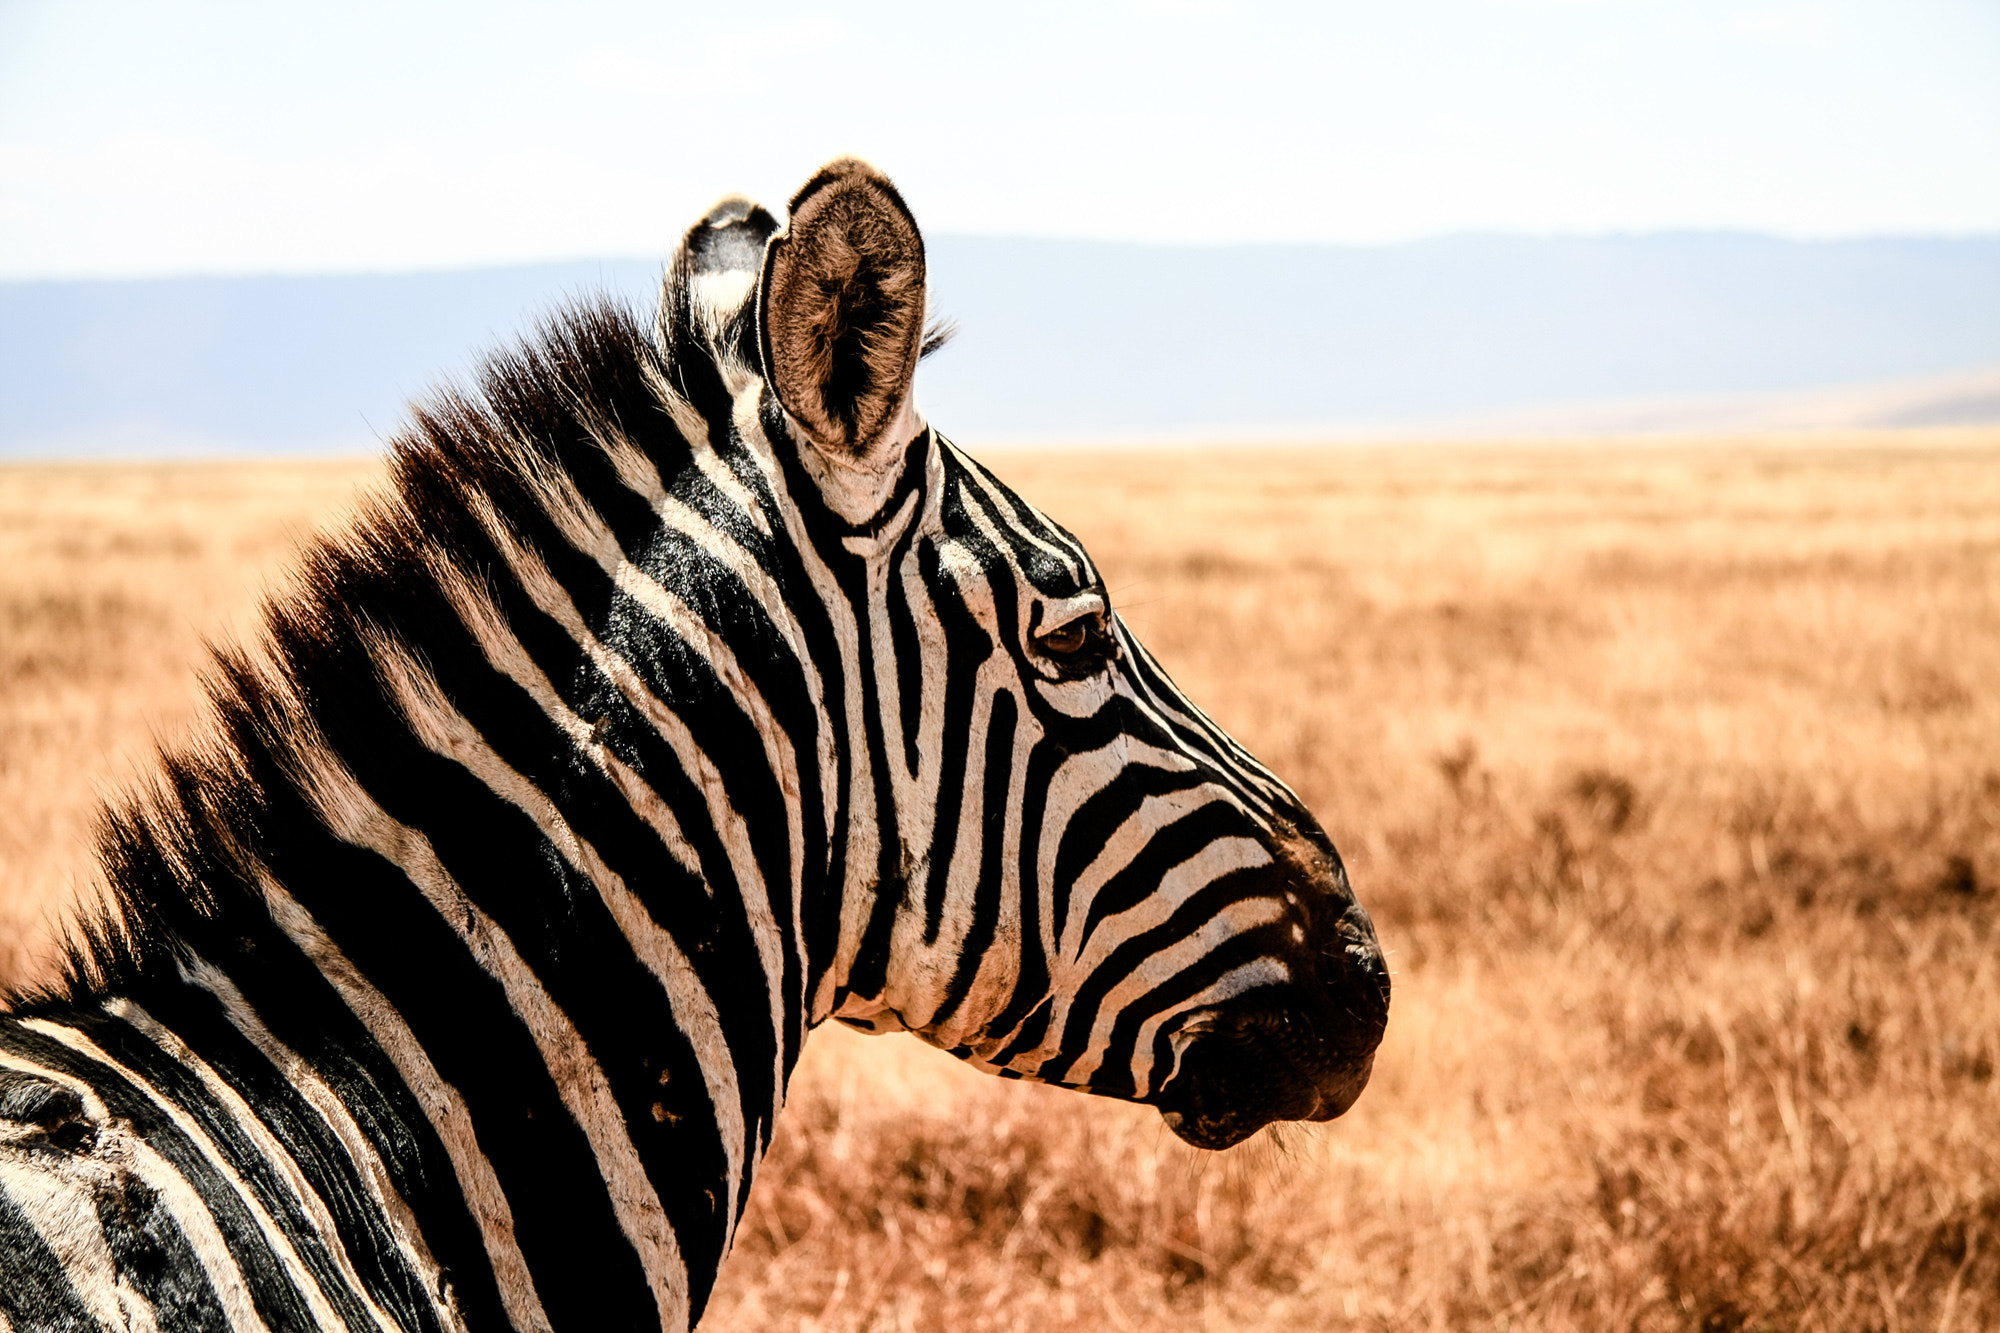 Photograph Tansania Zebra by Stefan Traxinger on 500px